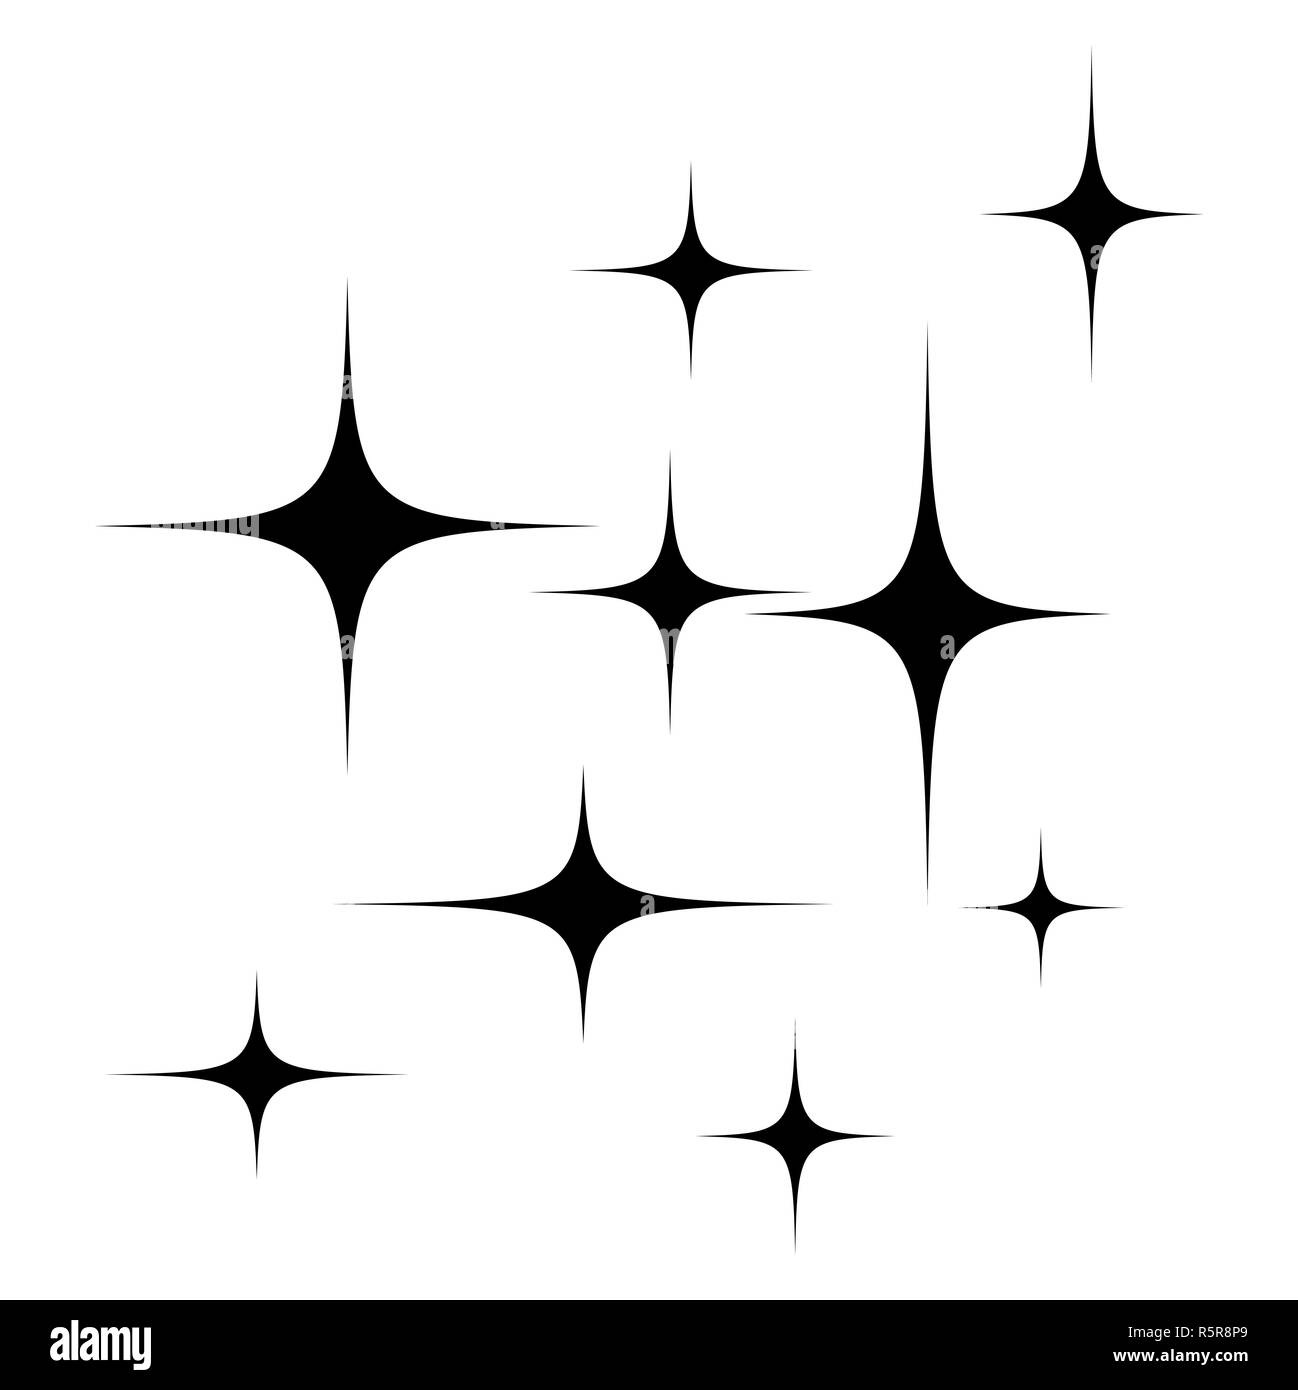 Star Rating Black and White Stock Photos & Images - Alamy